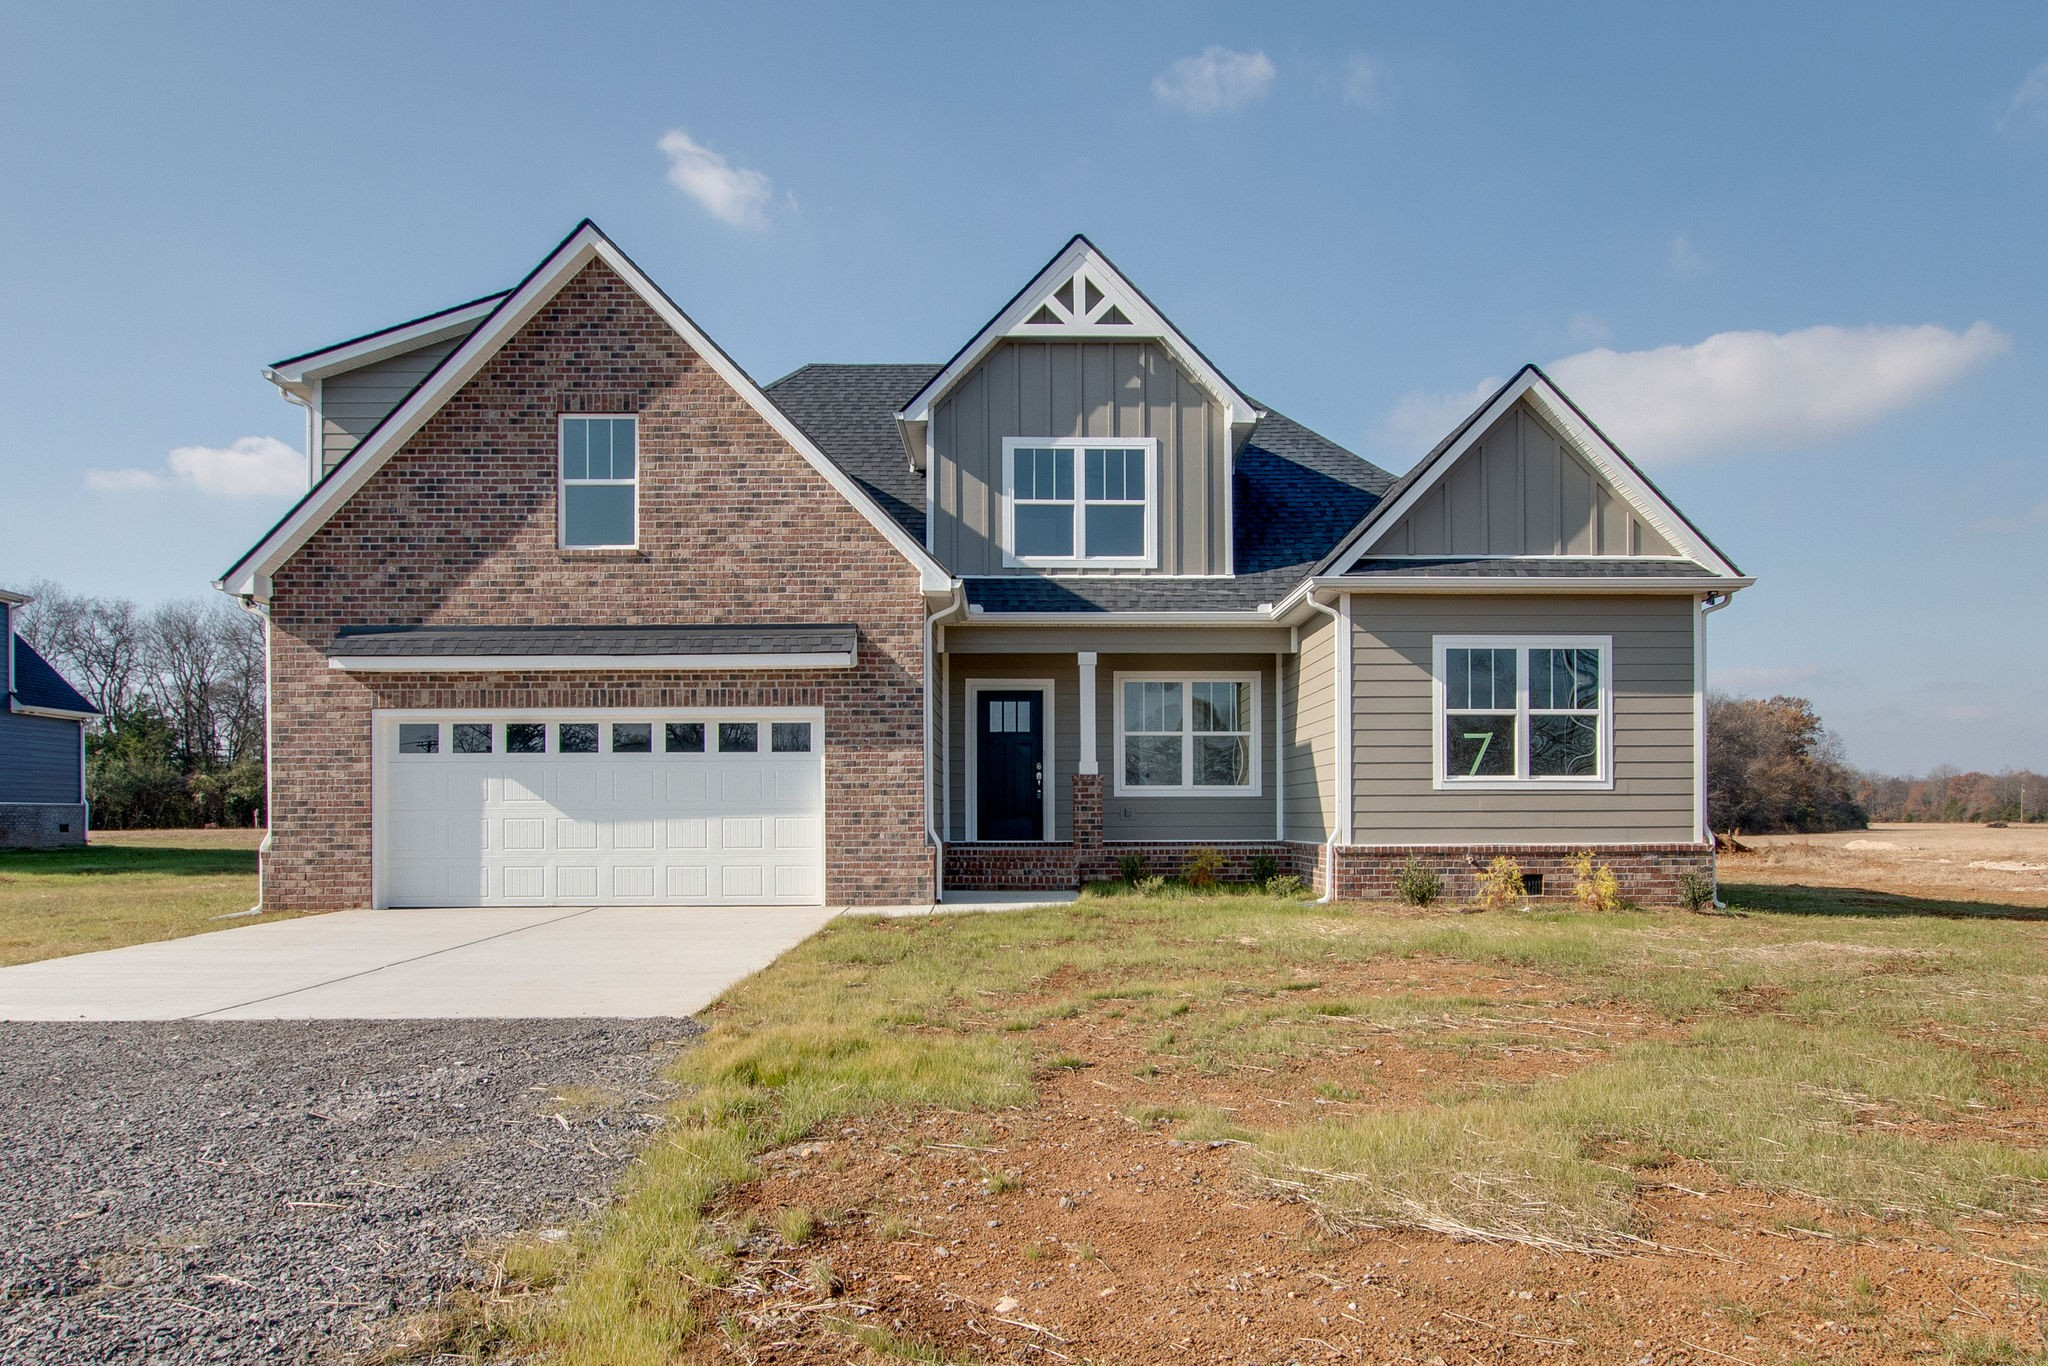 2494 Armstrong Valley Rd (Lot 7, Murfreesboro, TN 37128 - Murfreesboro, TN real estate listing